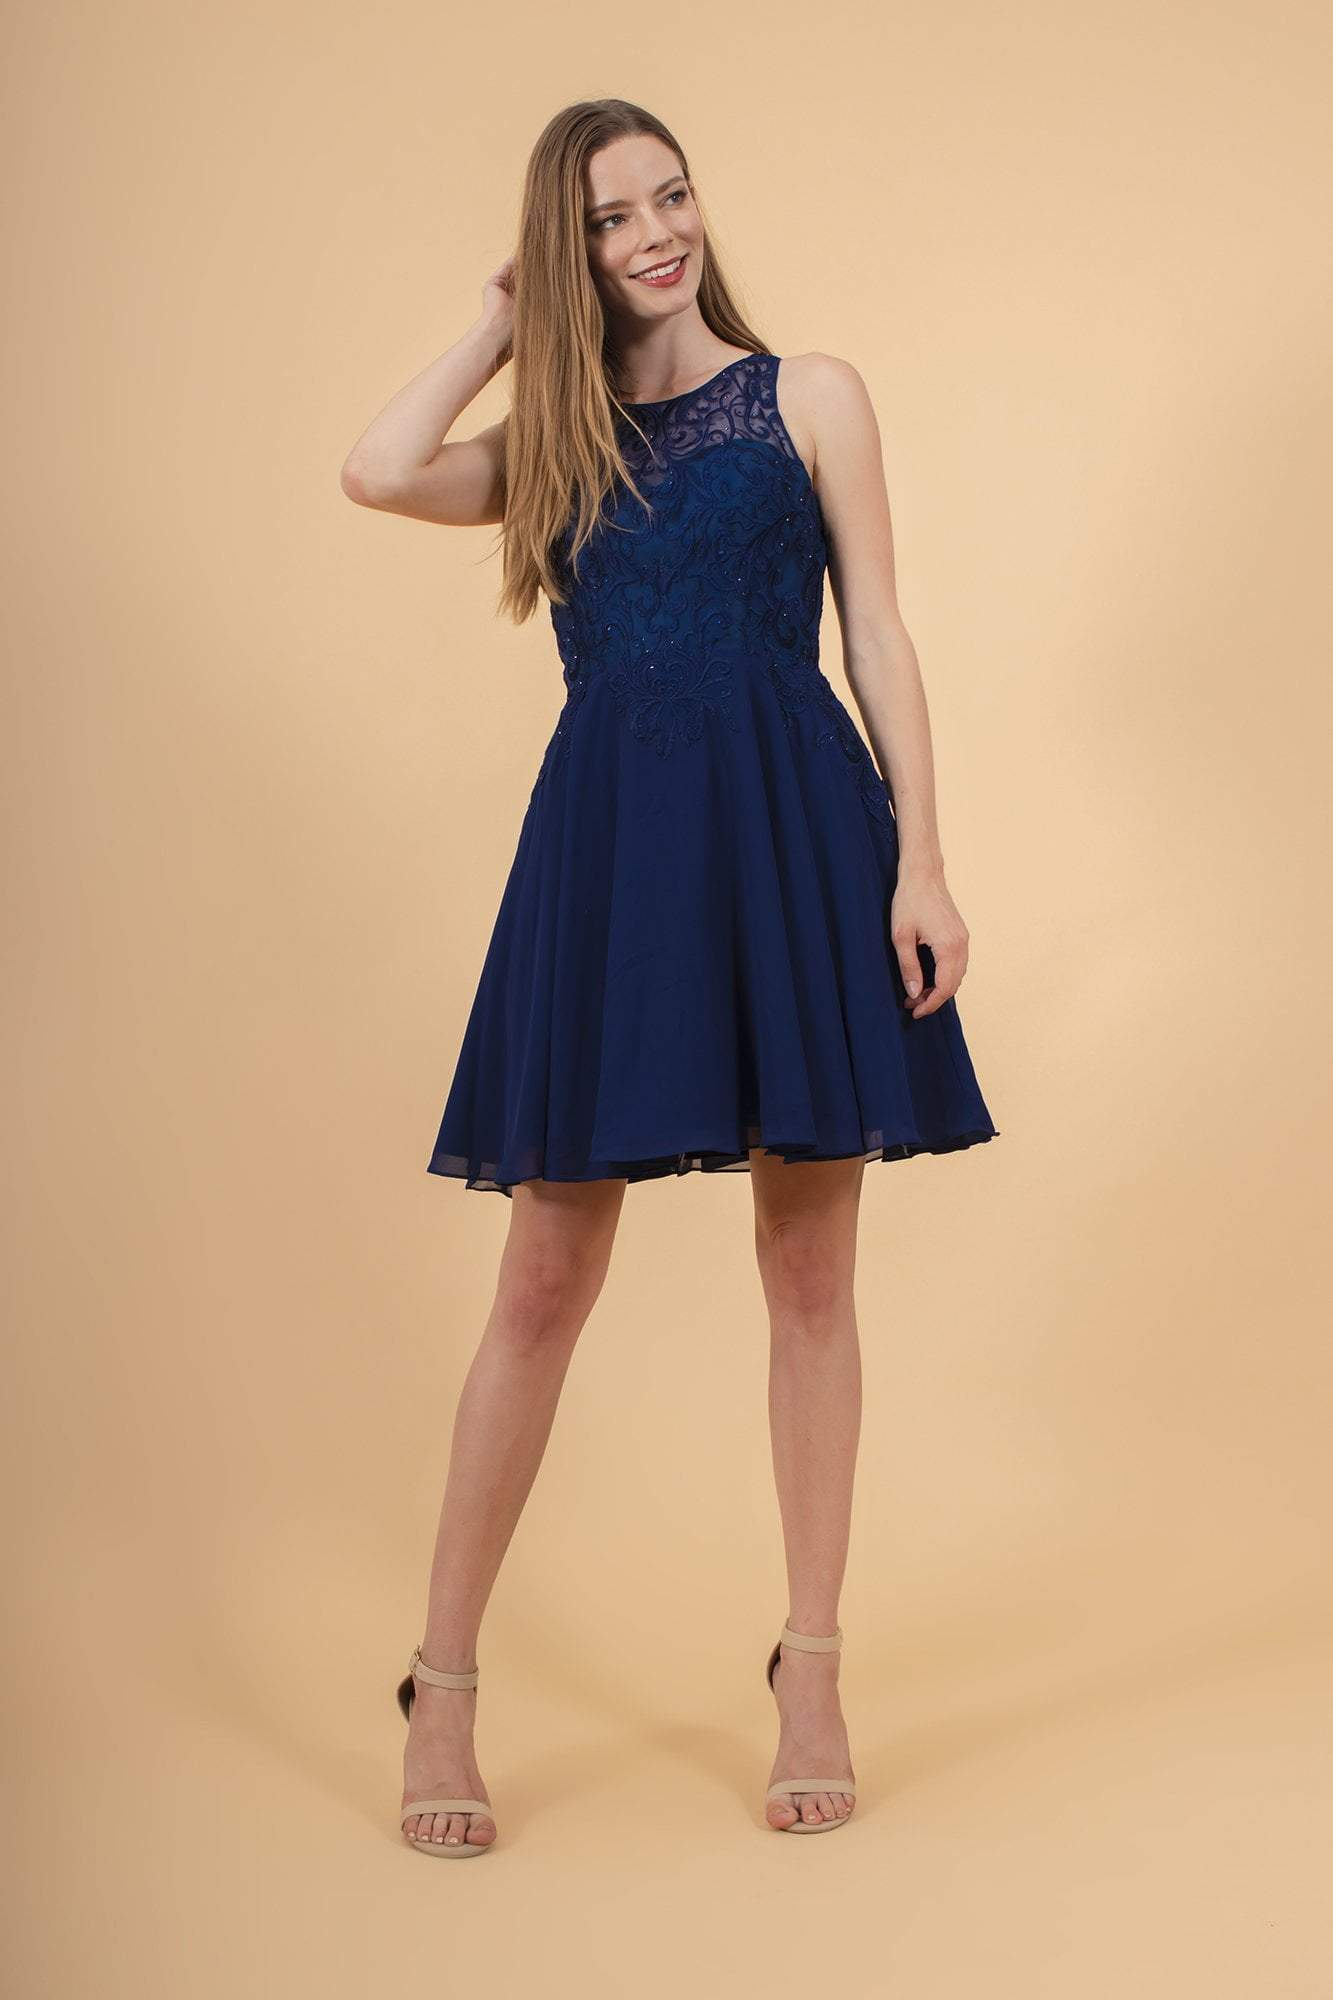 Elizabeth K - GS1618 Embroidered Swirl Motif Illusion Chiffon Dress Special Occasion Dress XS / Navy